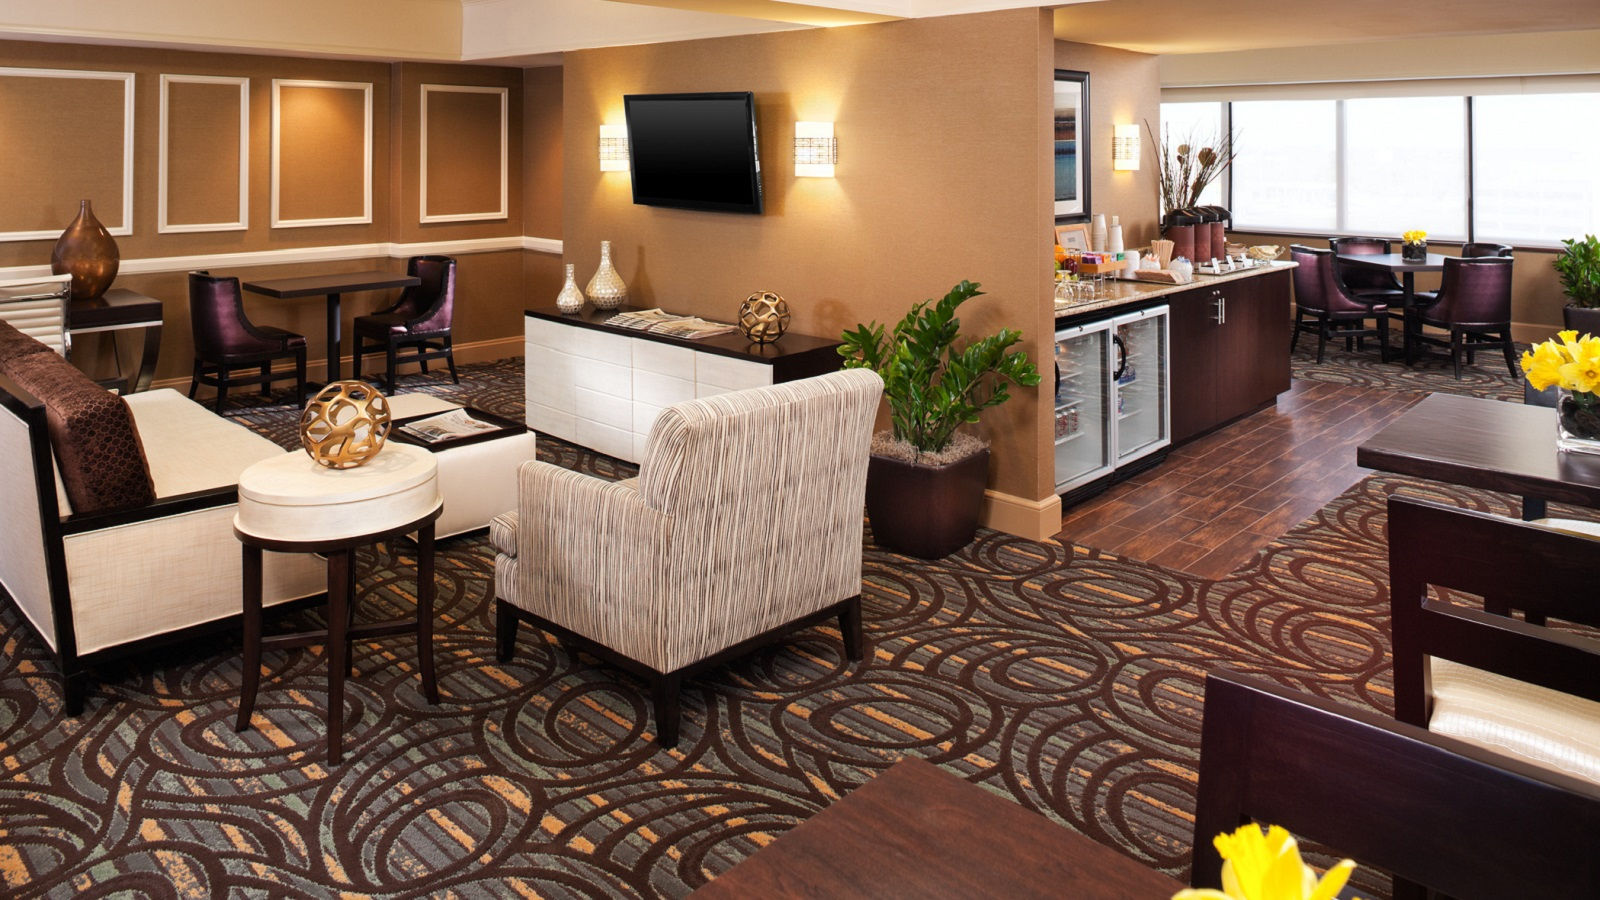 Sheraton Chicago O'Hare Airport Hotel - Hotel Features